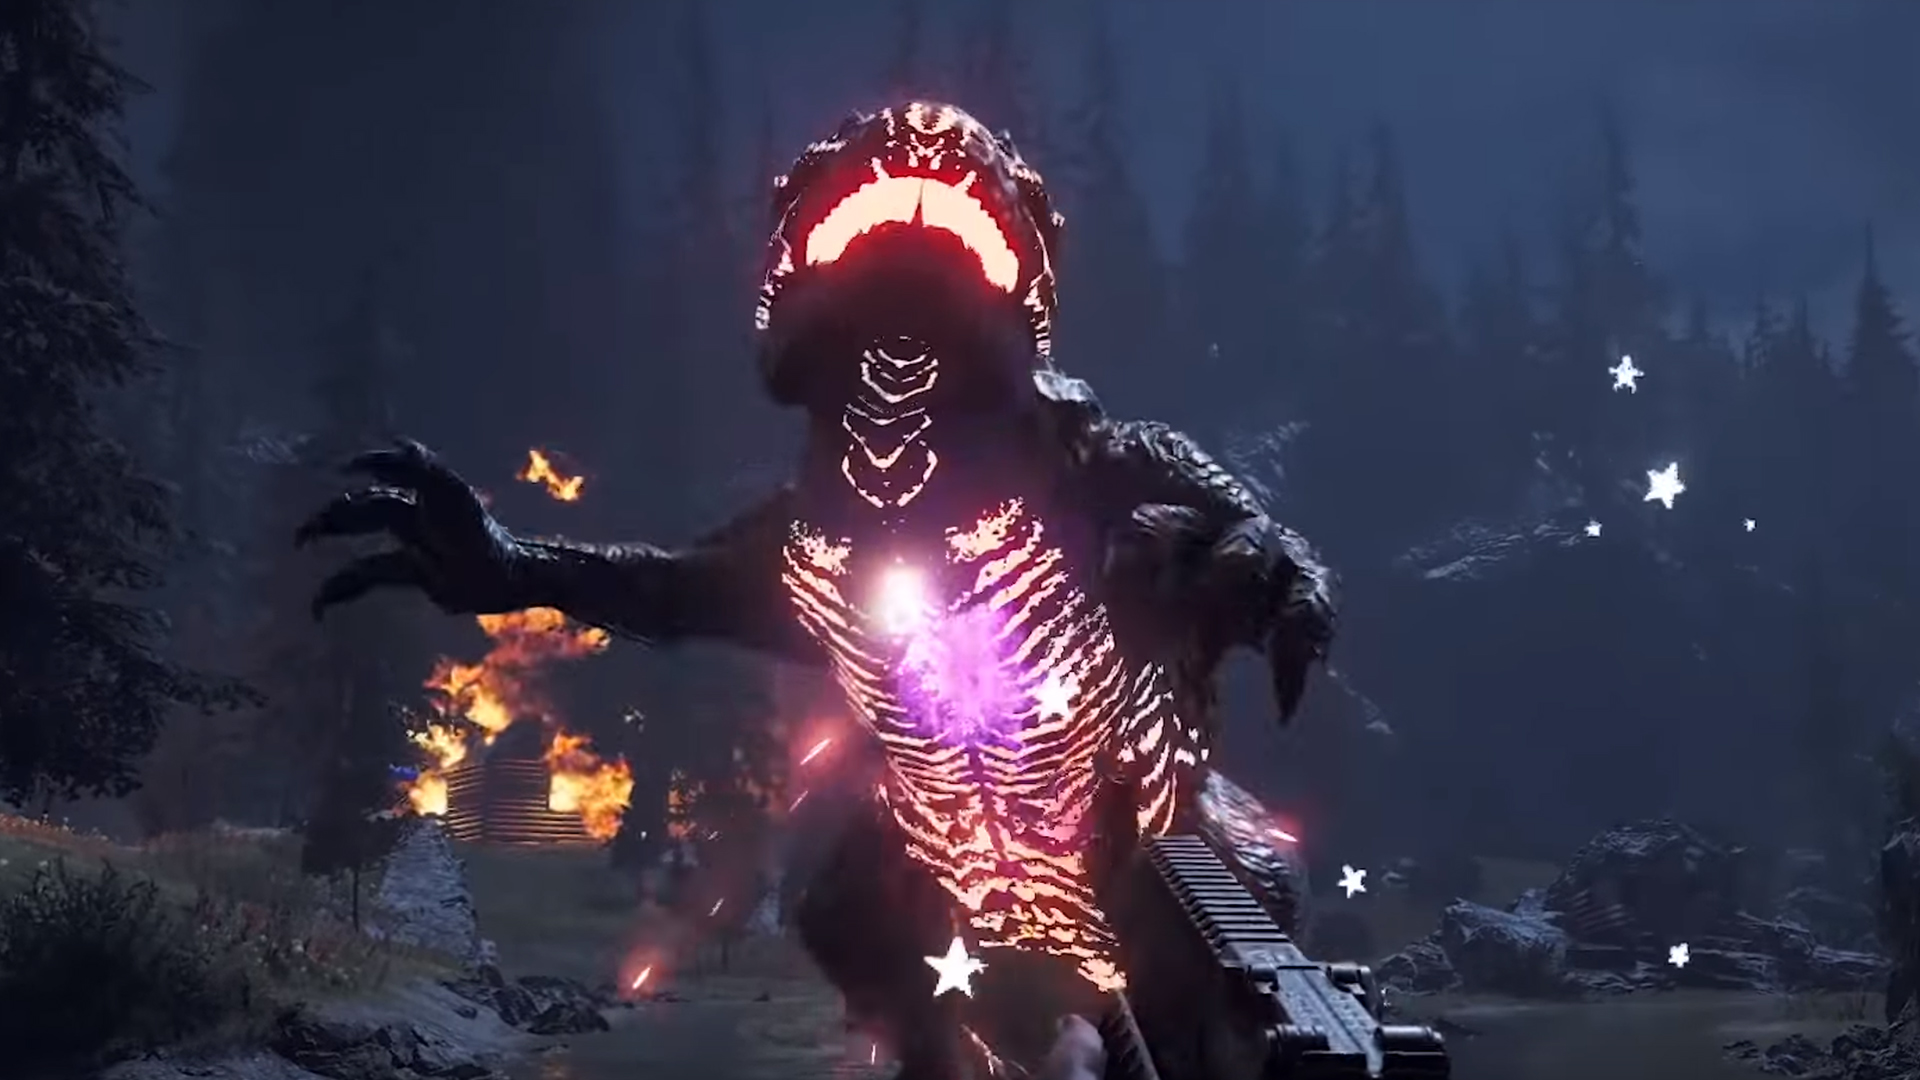 Blood Dragons Return In Far Cry 5 S Final Dlc Out This Month Pcgamesn